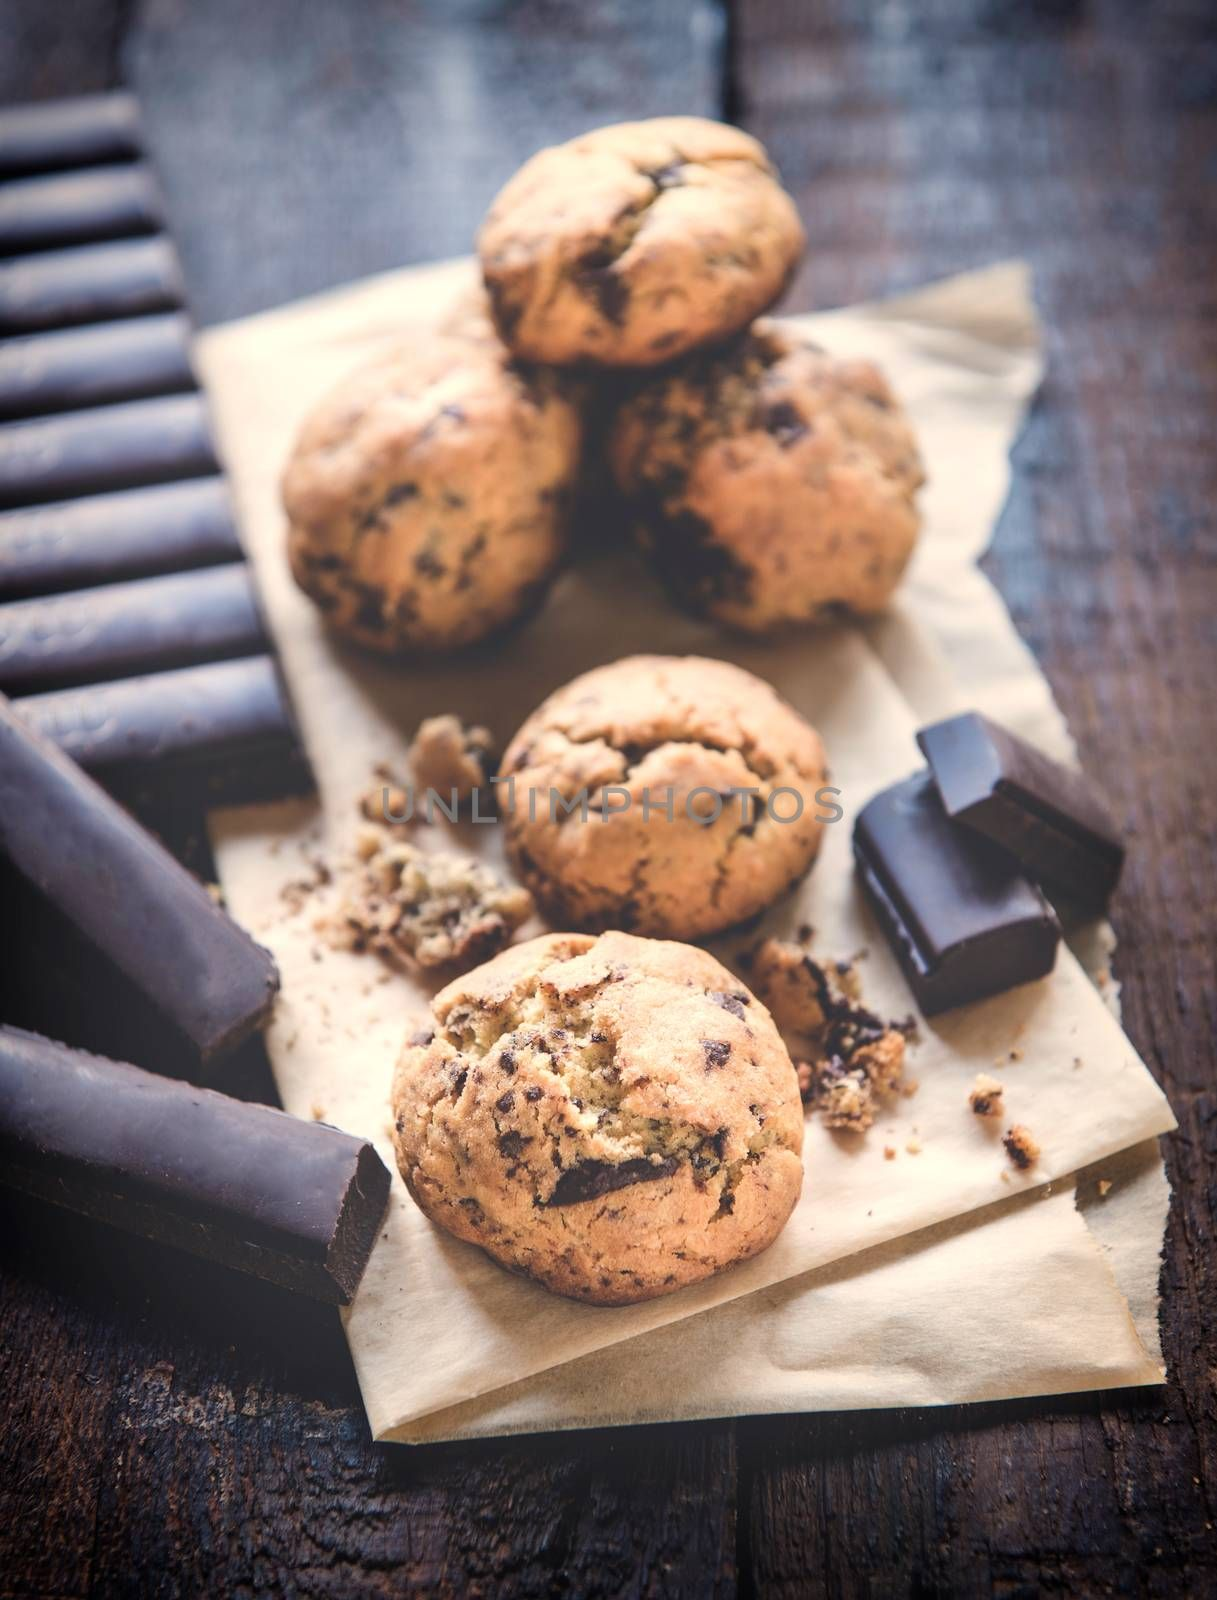 Sweet homemade chocolate chip cookies on wooden background,selective focus